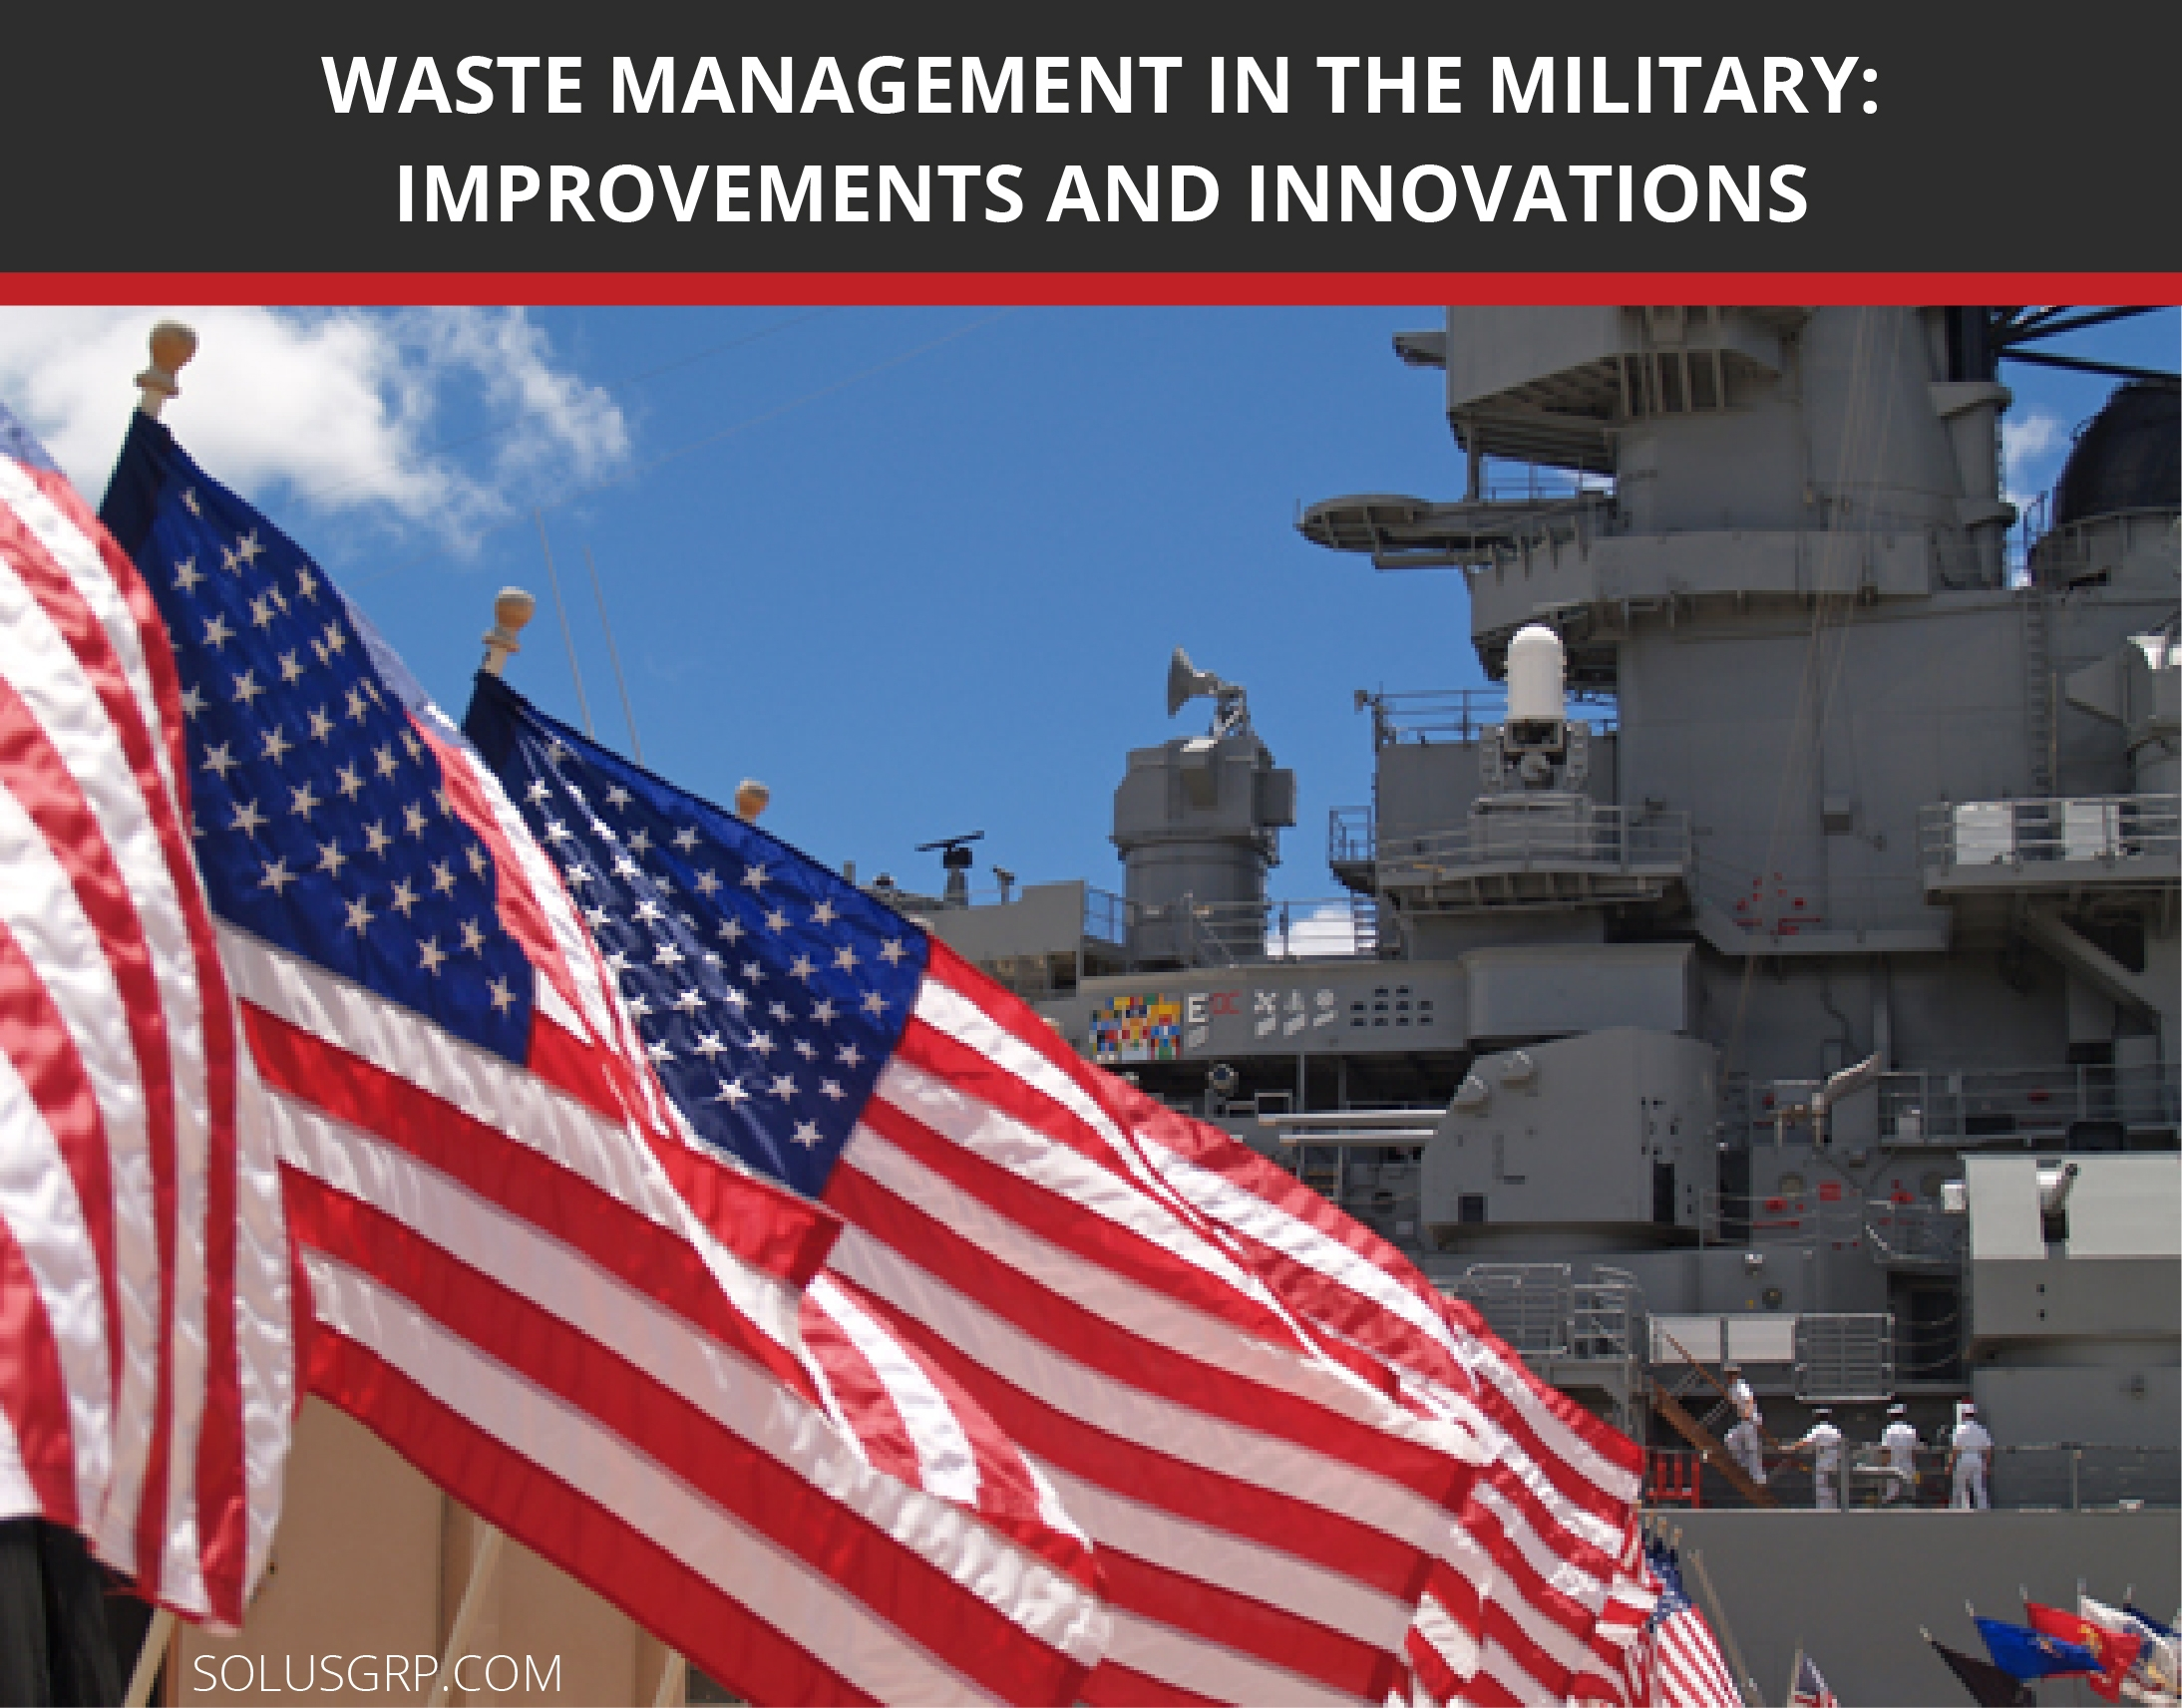 Improvements & Innovations in Waste Management in the Military